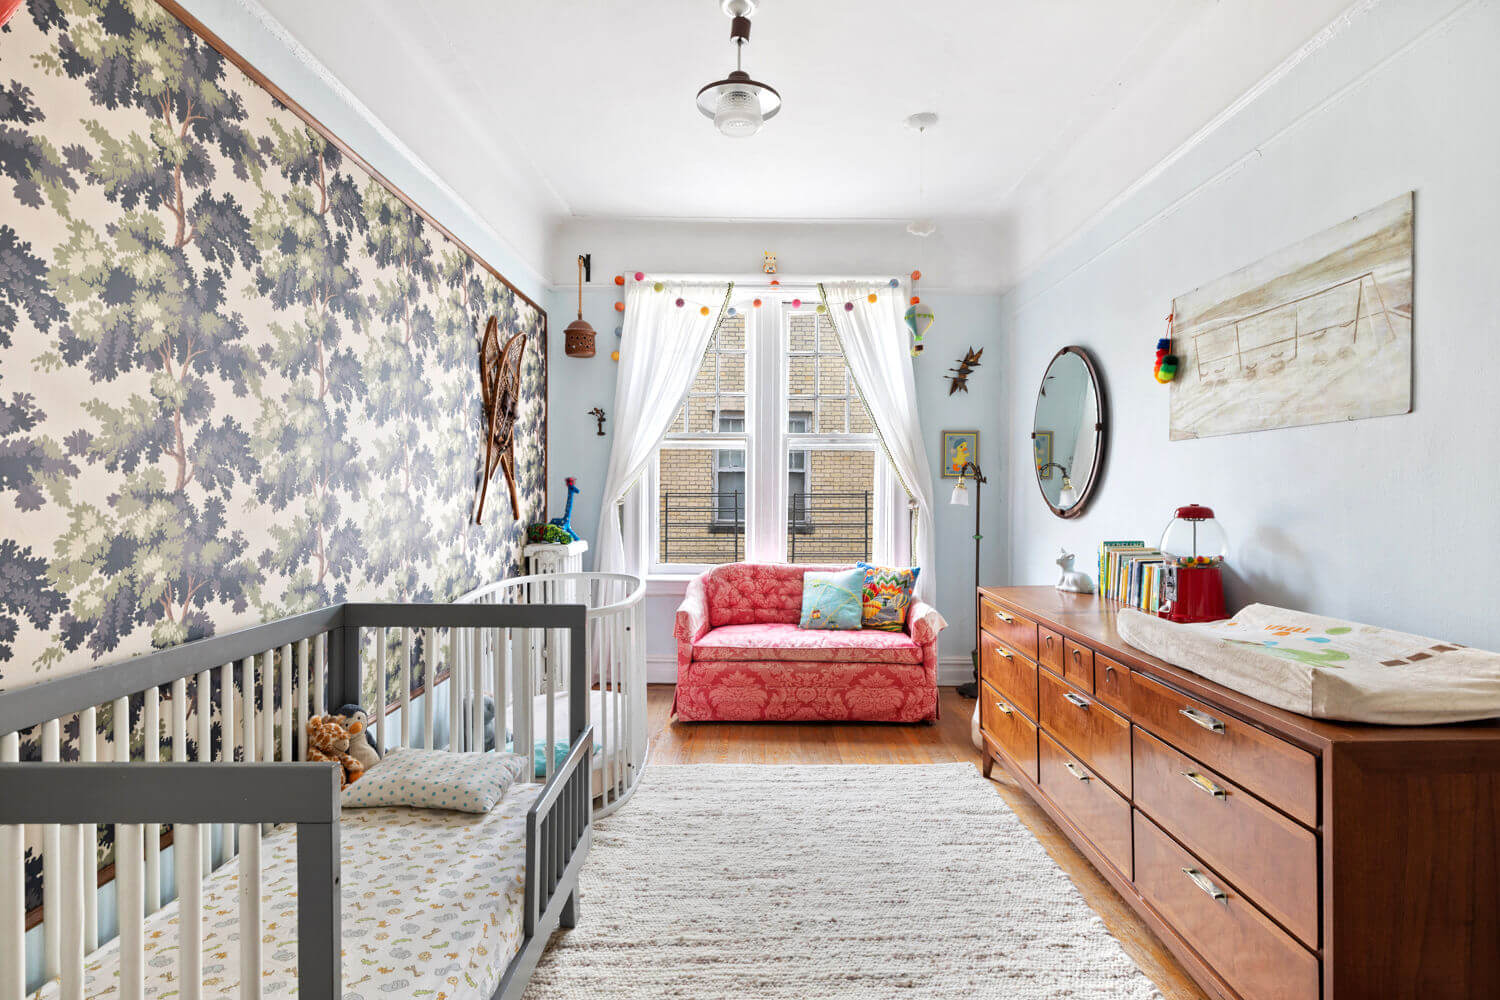 sunset park interior apartment for sale